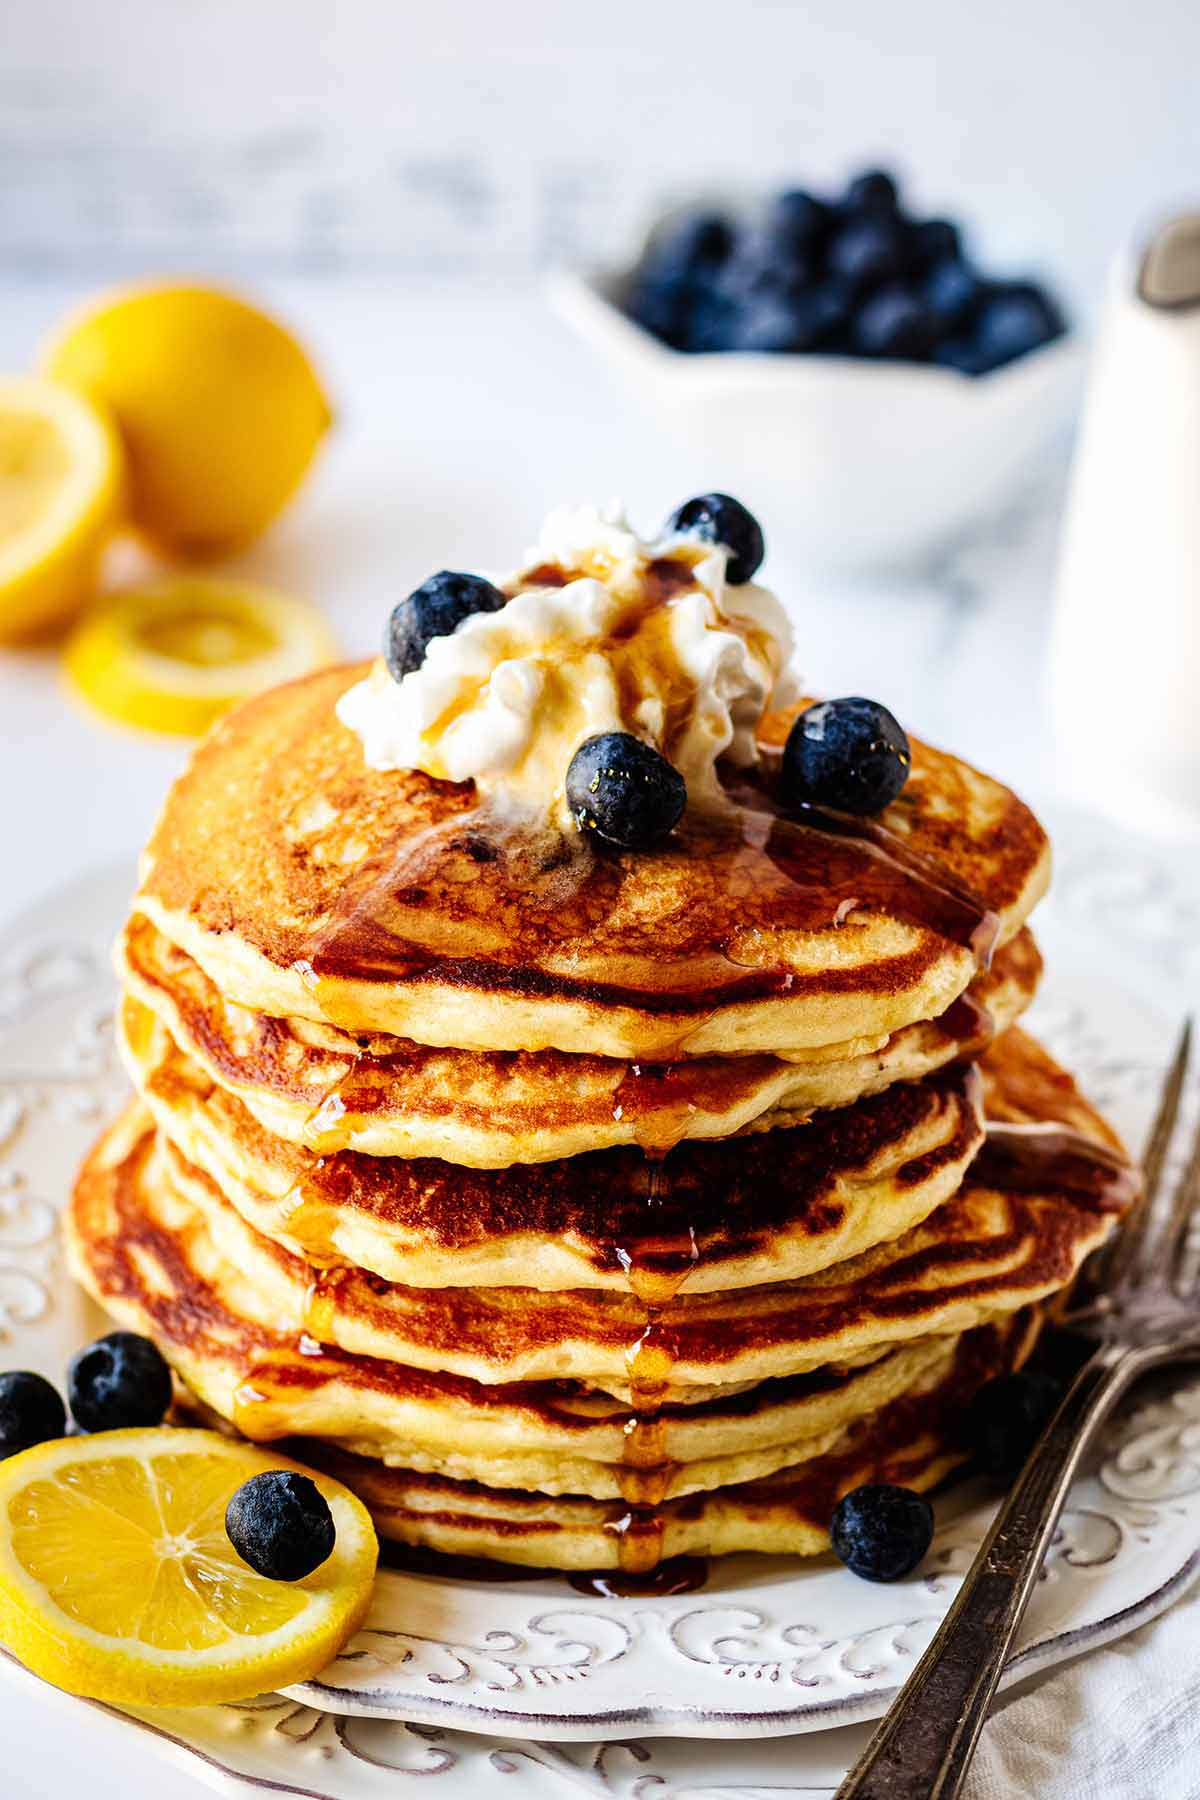 A stack of pancakes topped with cream and blueberries, with slices in the backgroun.